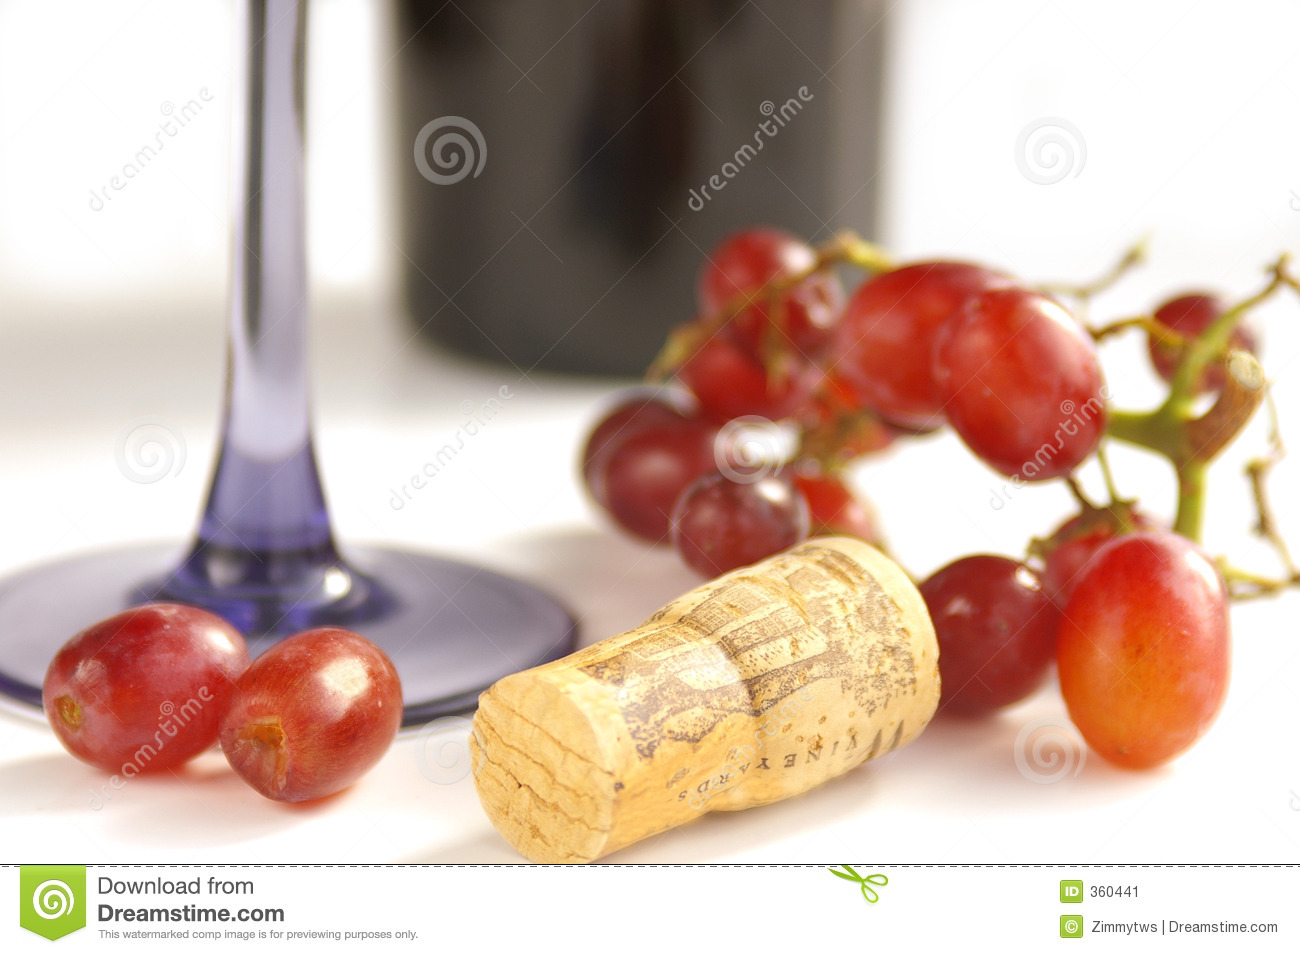 Grapes and cork with wine